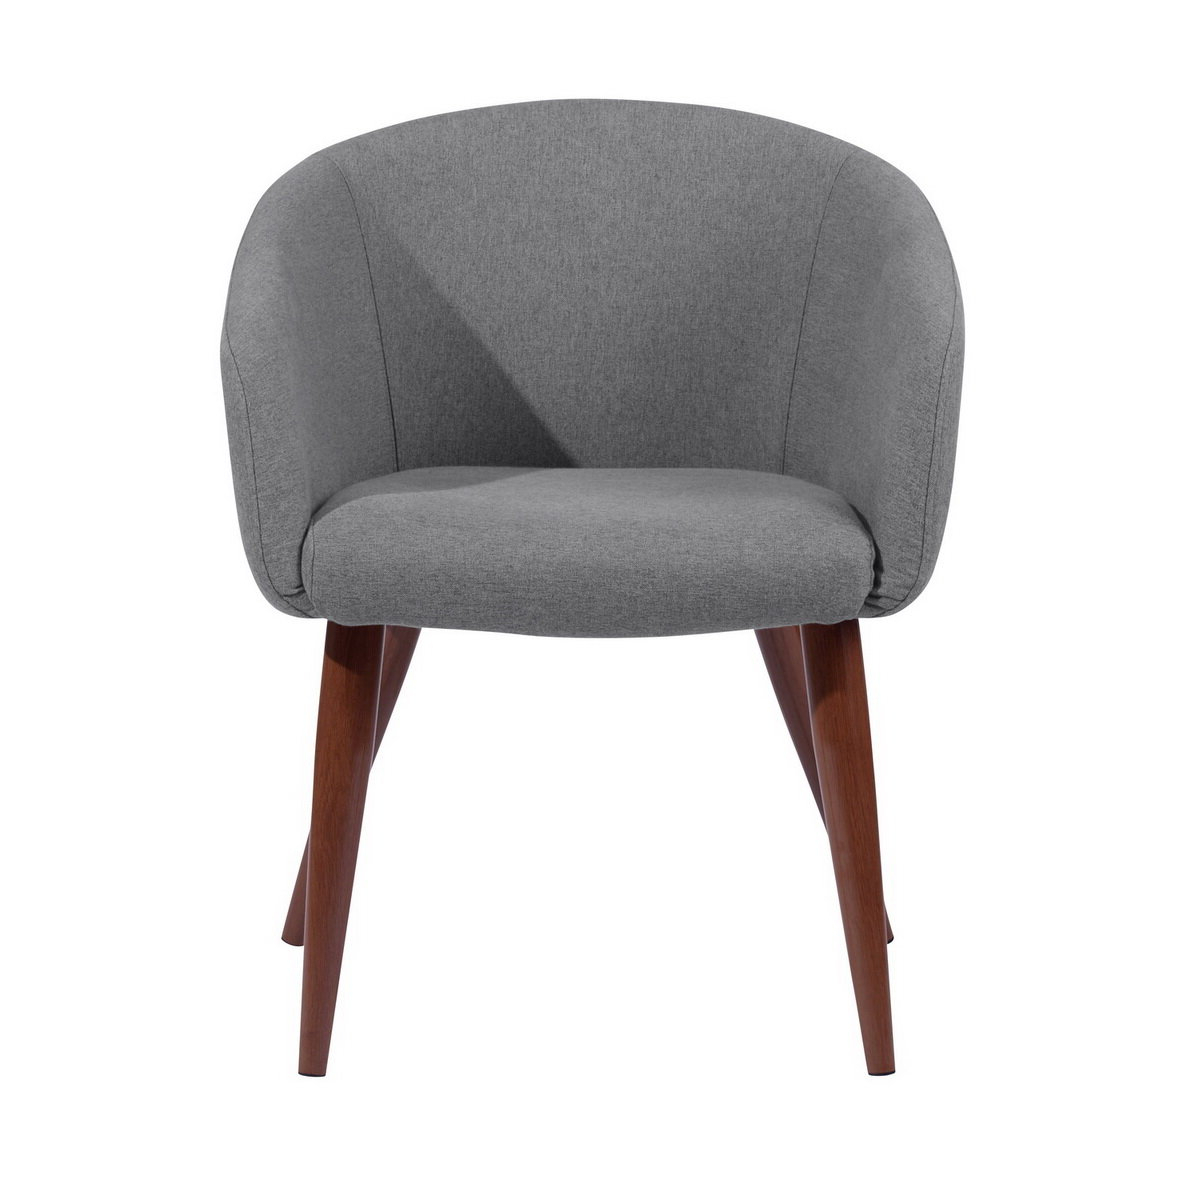 Boyden Upholstered Arm Chair In Newest Boyden Armchairs (View 3 of 20)